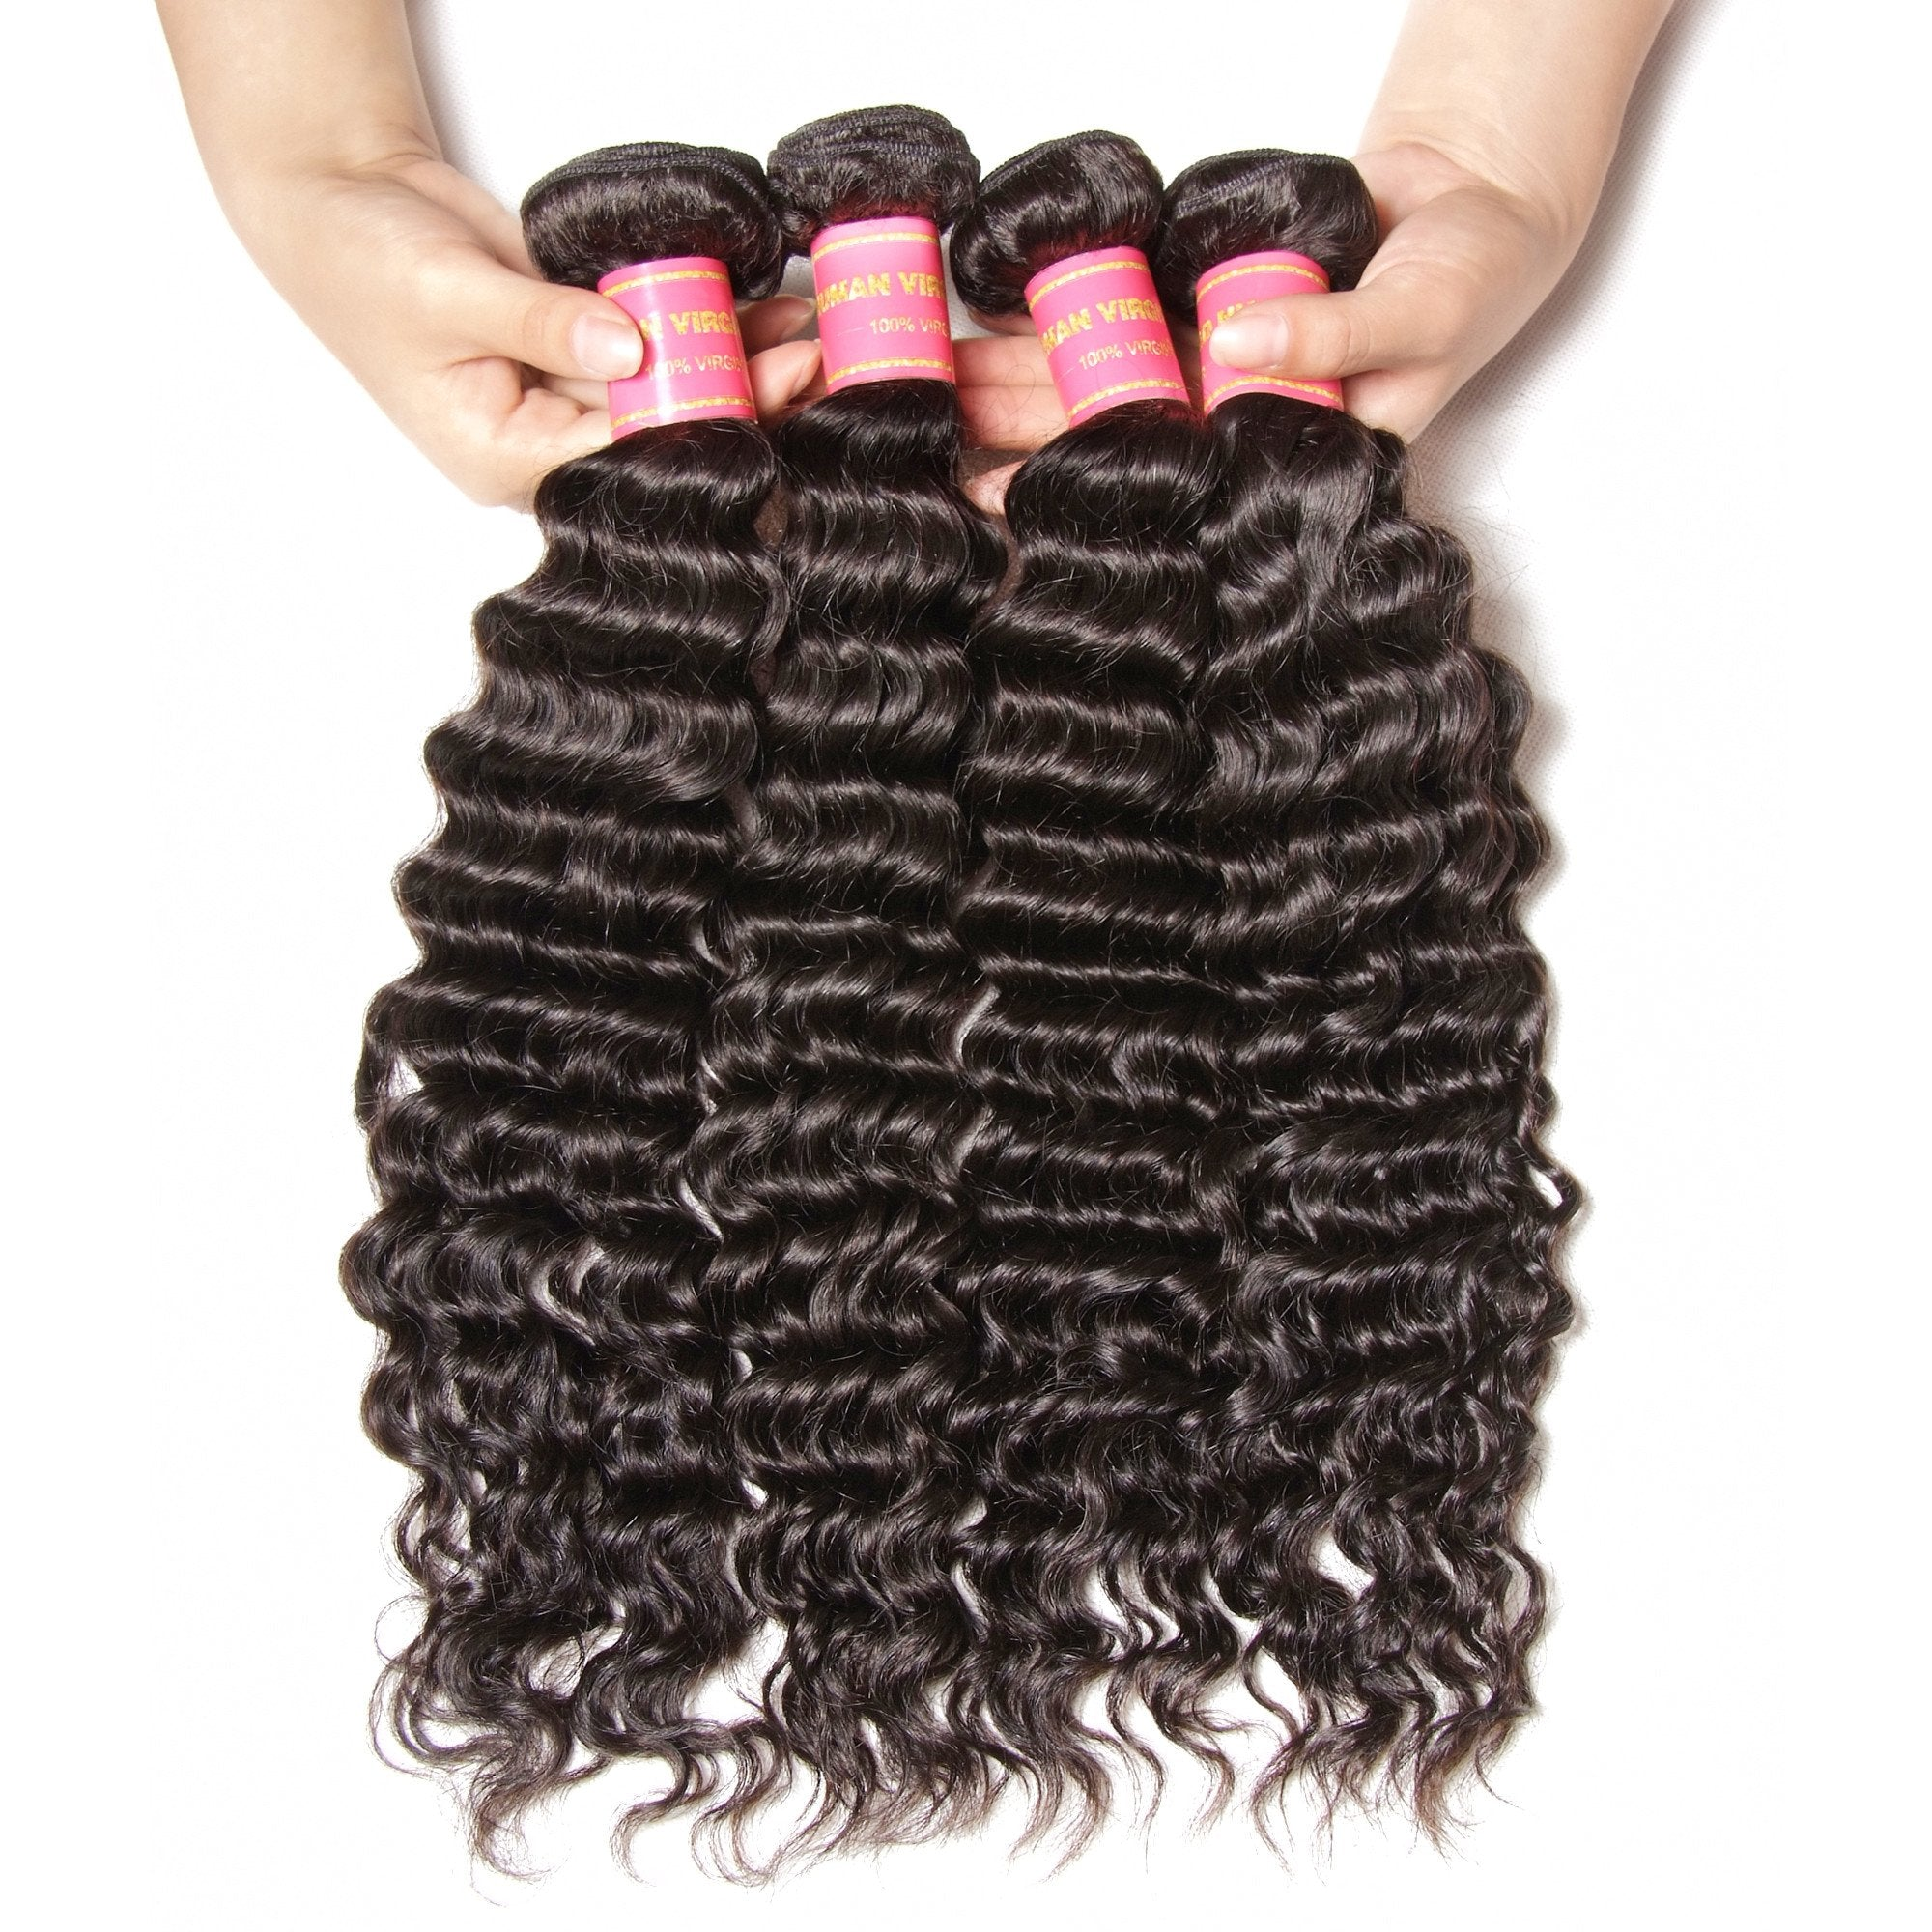 Yiroo 7a Peruvian Deep Wave Hair 4 Bundles100 Virgin Human Hair Weav